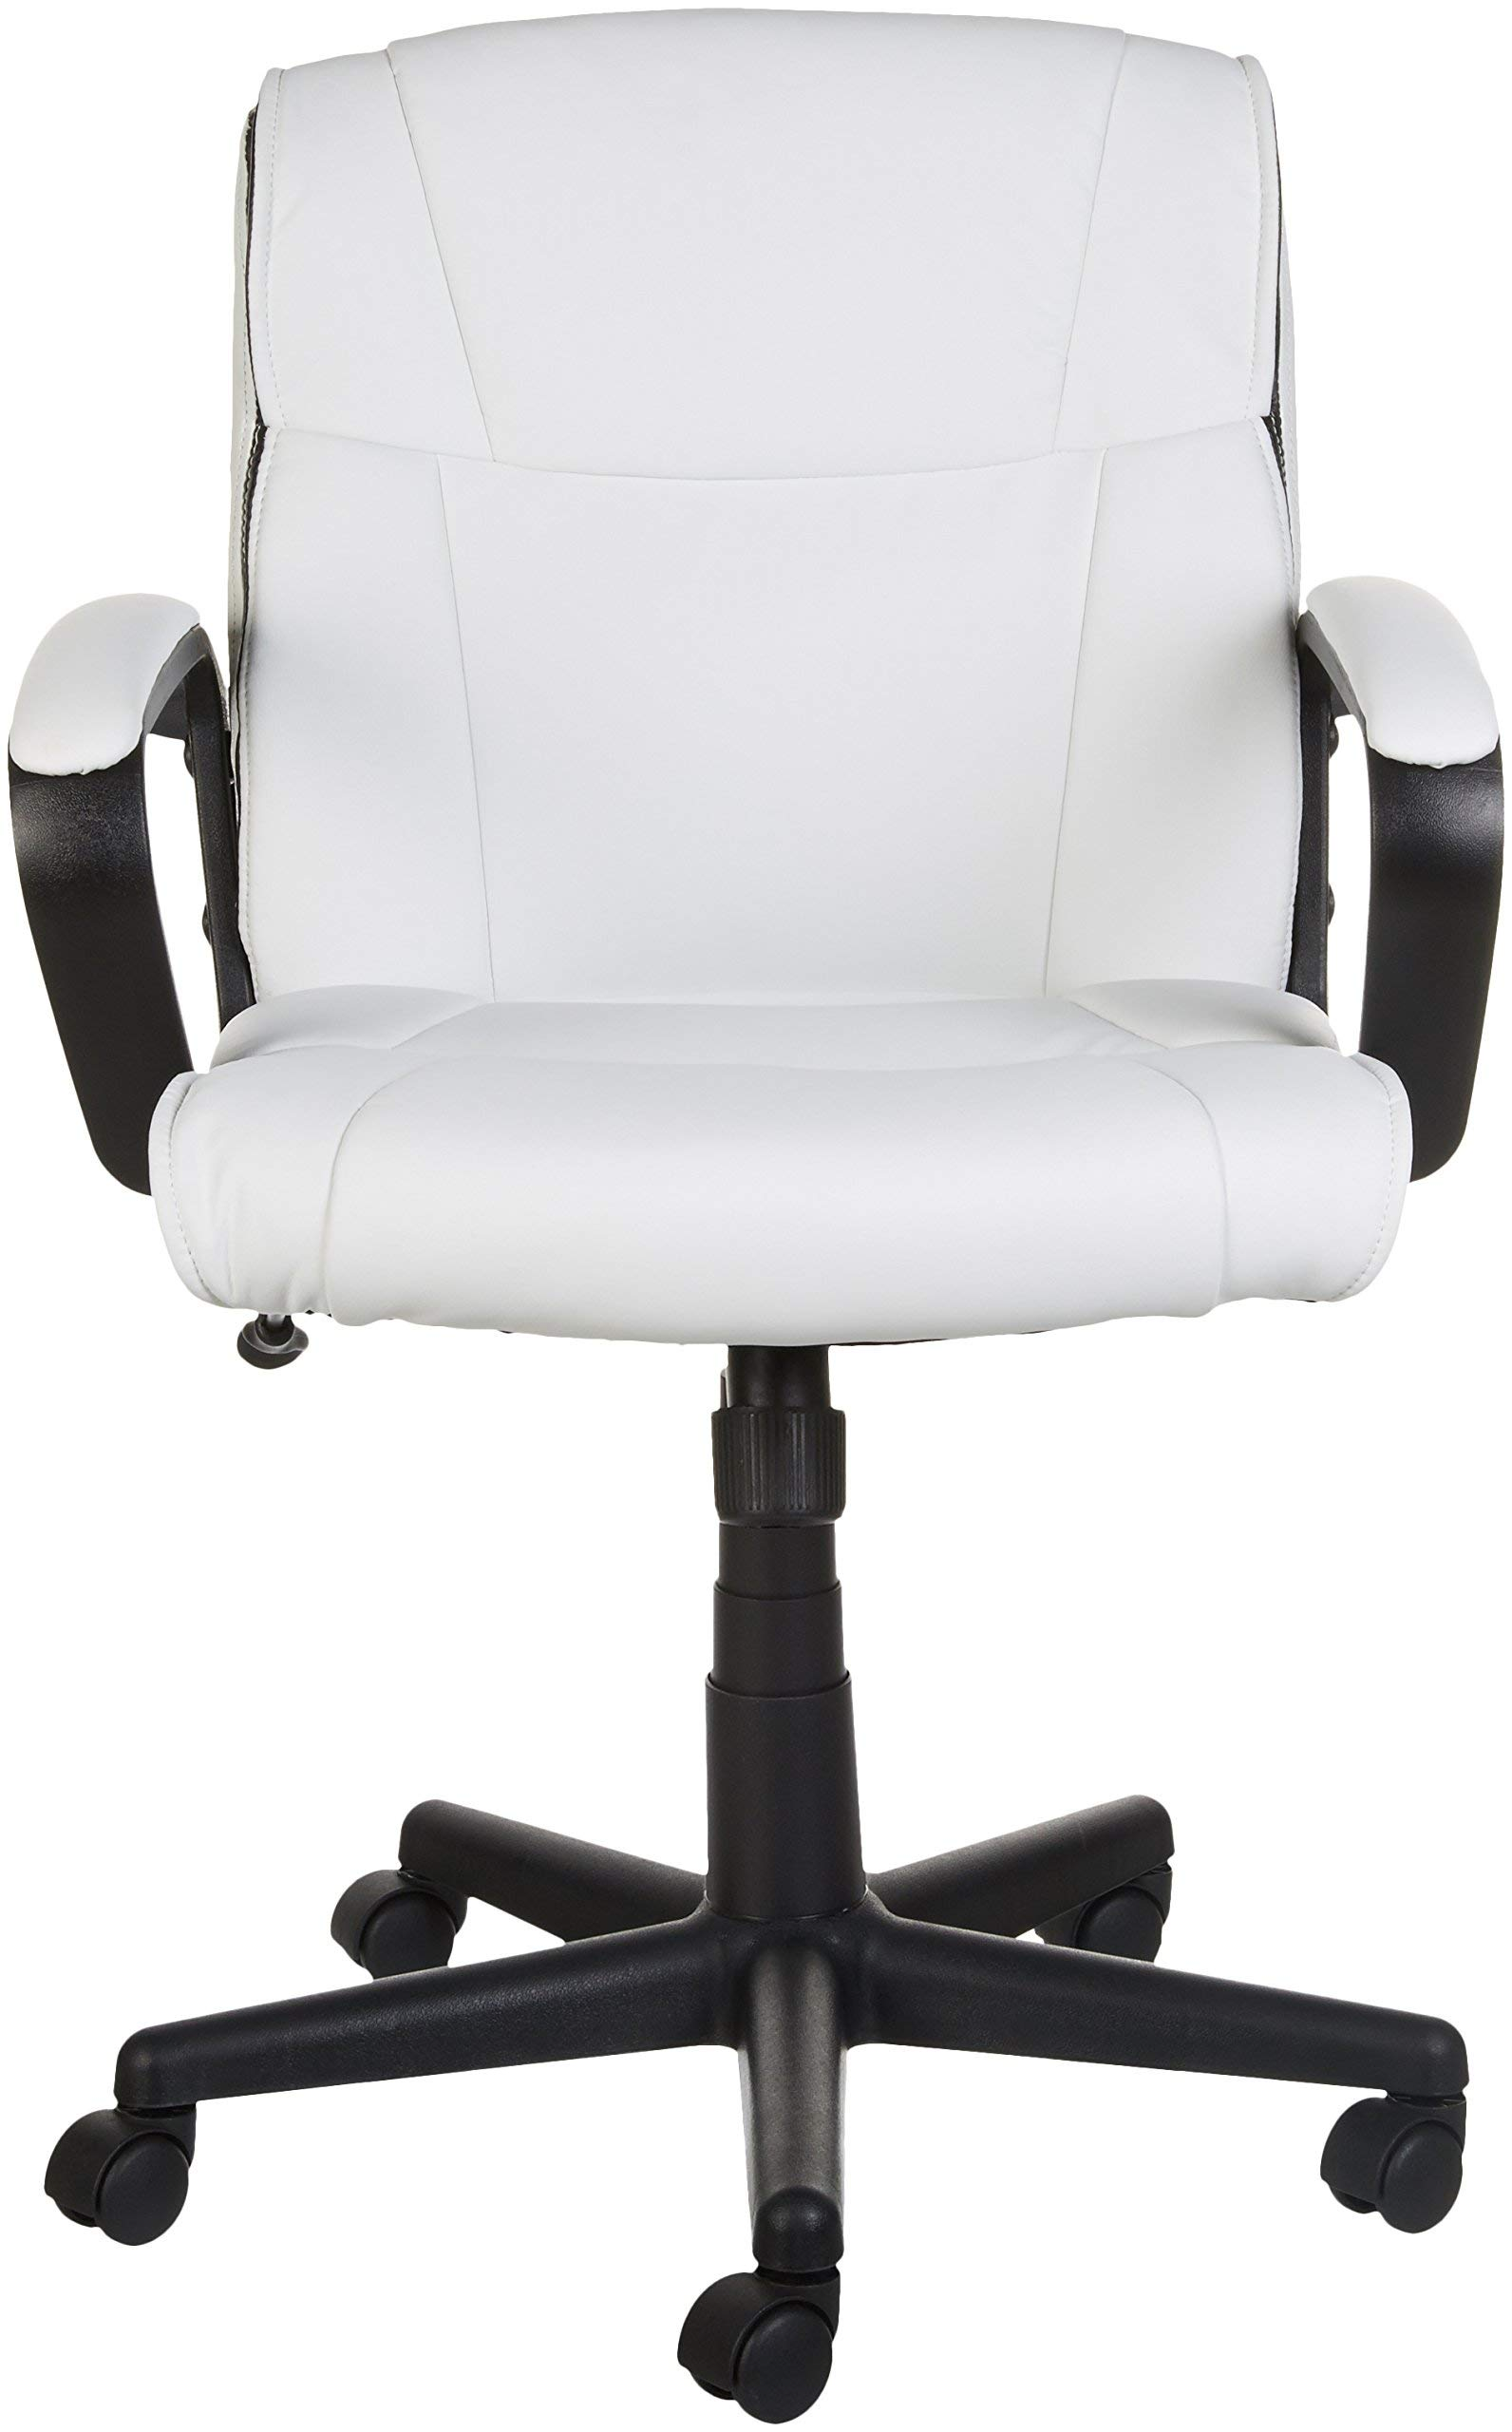 AmazonBasics Classic Leather-Padded Mid-Back Office Computer Desk Chair with Armrest - White by AmazonBasics (Image #3)